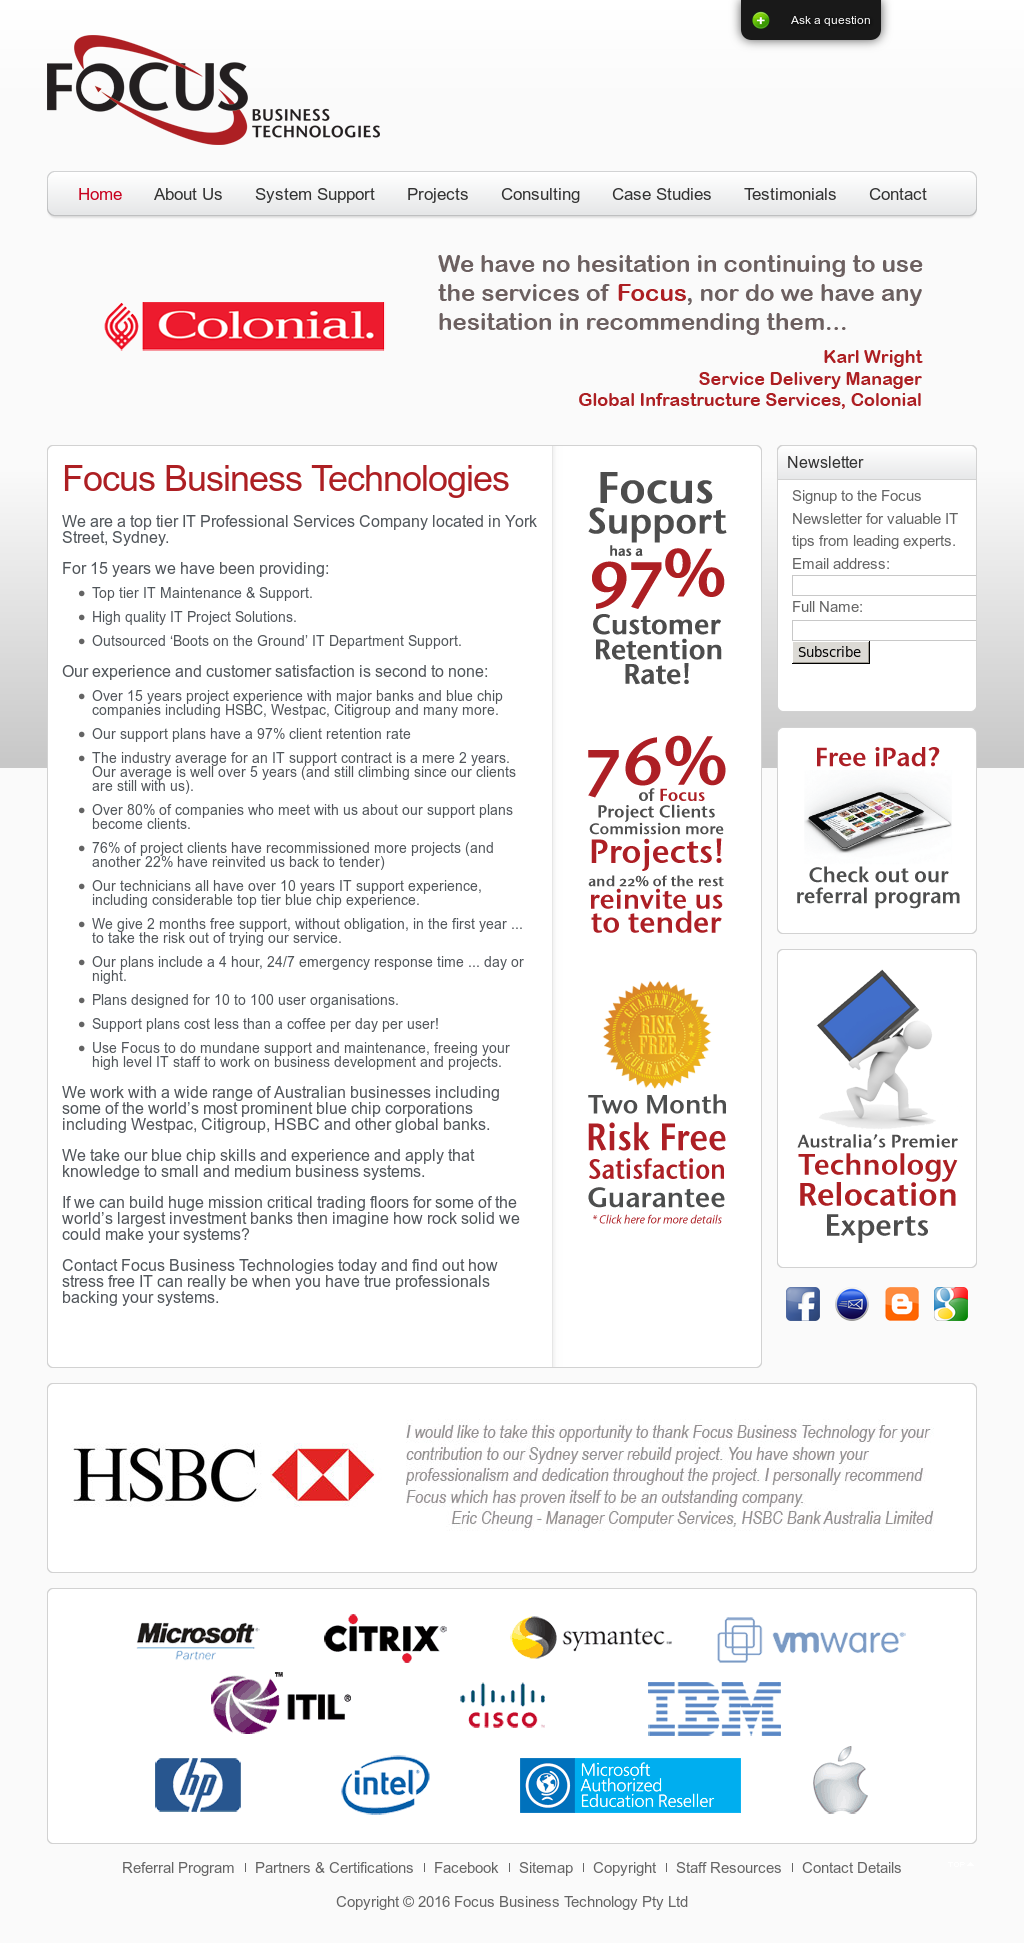 Focus Systems Maintenance Competitors, Revenue and Employees